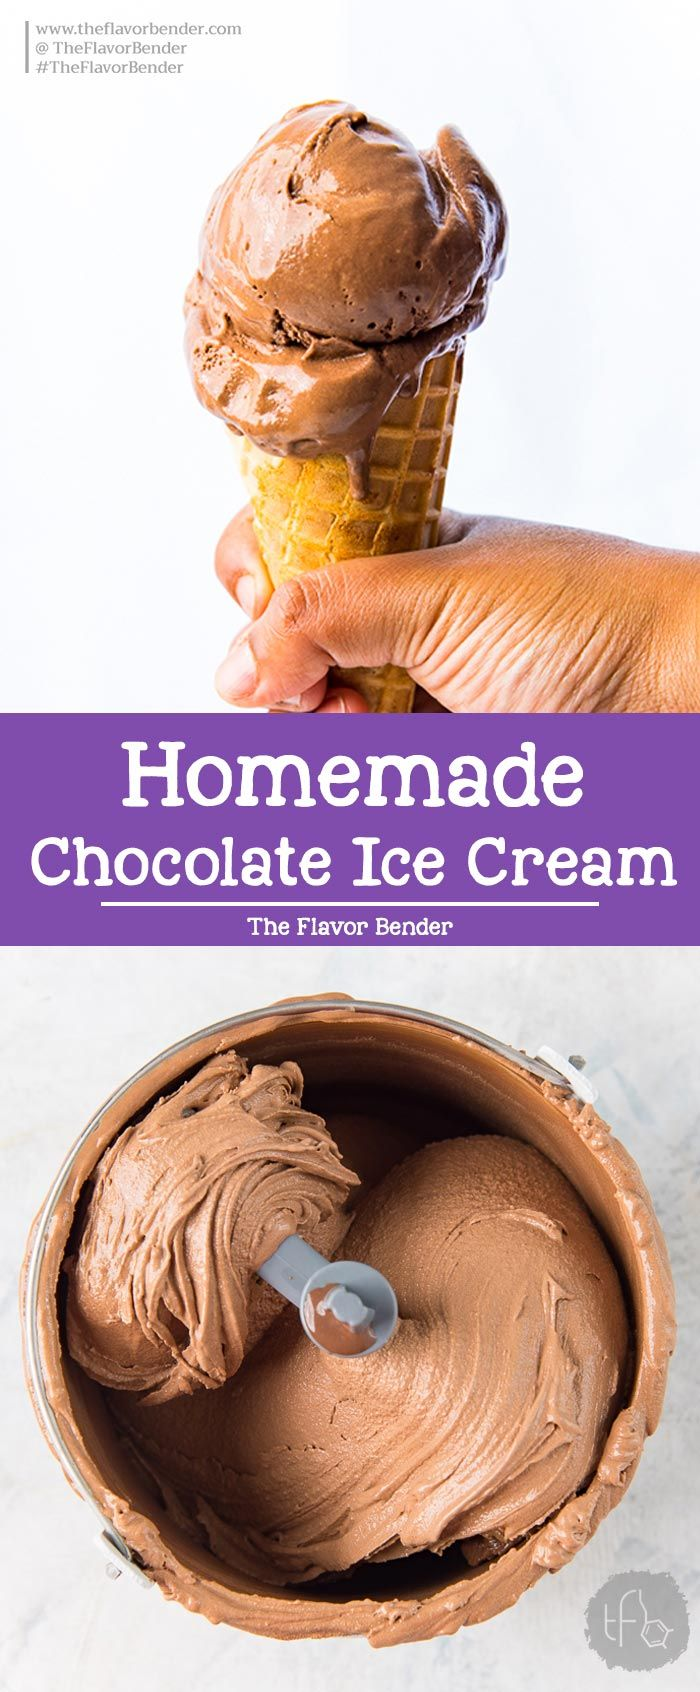 Delicious Homemade Chocolate Ice Cream - The Flavor Bender